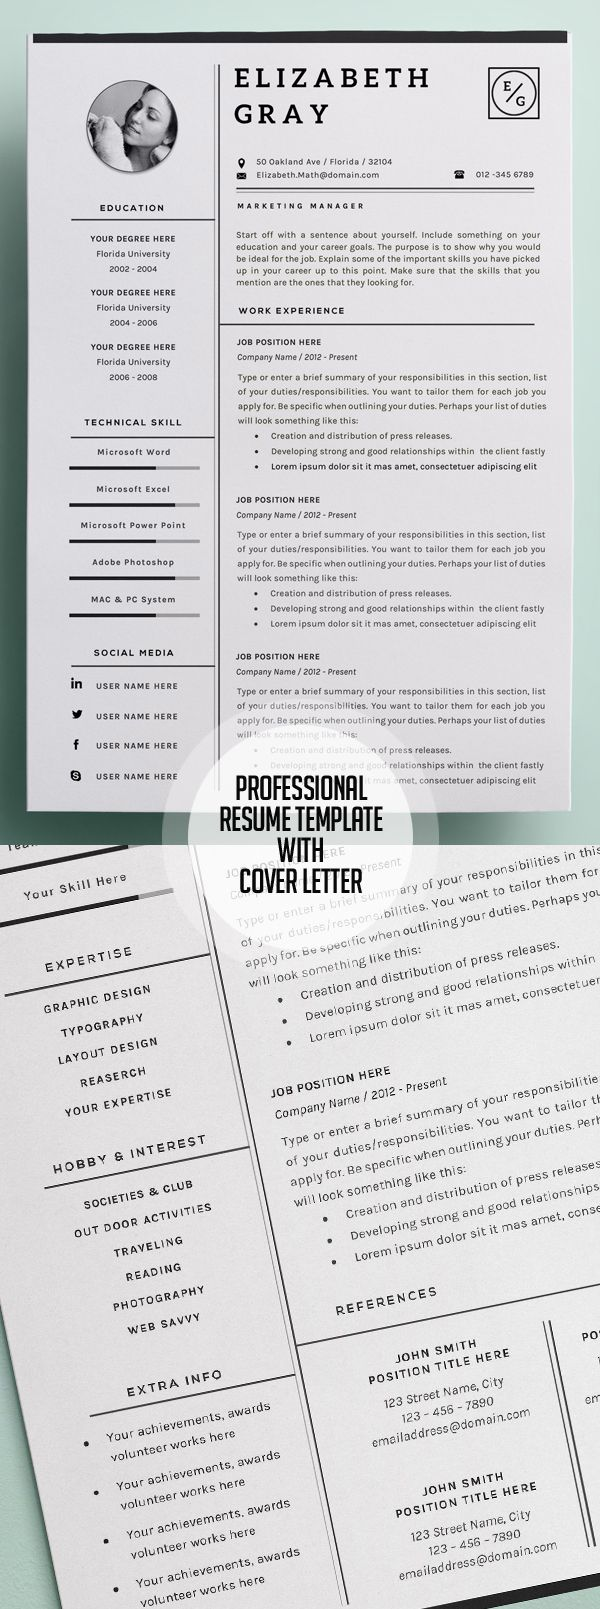 Opposenewapstandardsus  Ravishing  Resume Ideas On Pinterest  Resume Resume Templates And  With Entrancing Professional And Modern Resume Template With Page Cover Cvtemplate With Amusing Verbs To Use On Resume Also Resume Template Microsoft Word  In Addition Social Work Resume Sample And Bartender Resume Objective As Well As How Does A Resume Look Like Additionally Resume For Pharmacy Technician From Pinterestcom With Opposenewapstandardsus  Entrancing  Resume Ideas On Pinterest  Resume Resume Templates And  With Amusing Professional And Modern Resume Template With Page Cover Cvtemplate And Ravishing Verbs To Use On Resume Also Resume Template Microsoft Word  In Addition Social Work Resume Sample From Pinterestcom